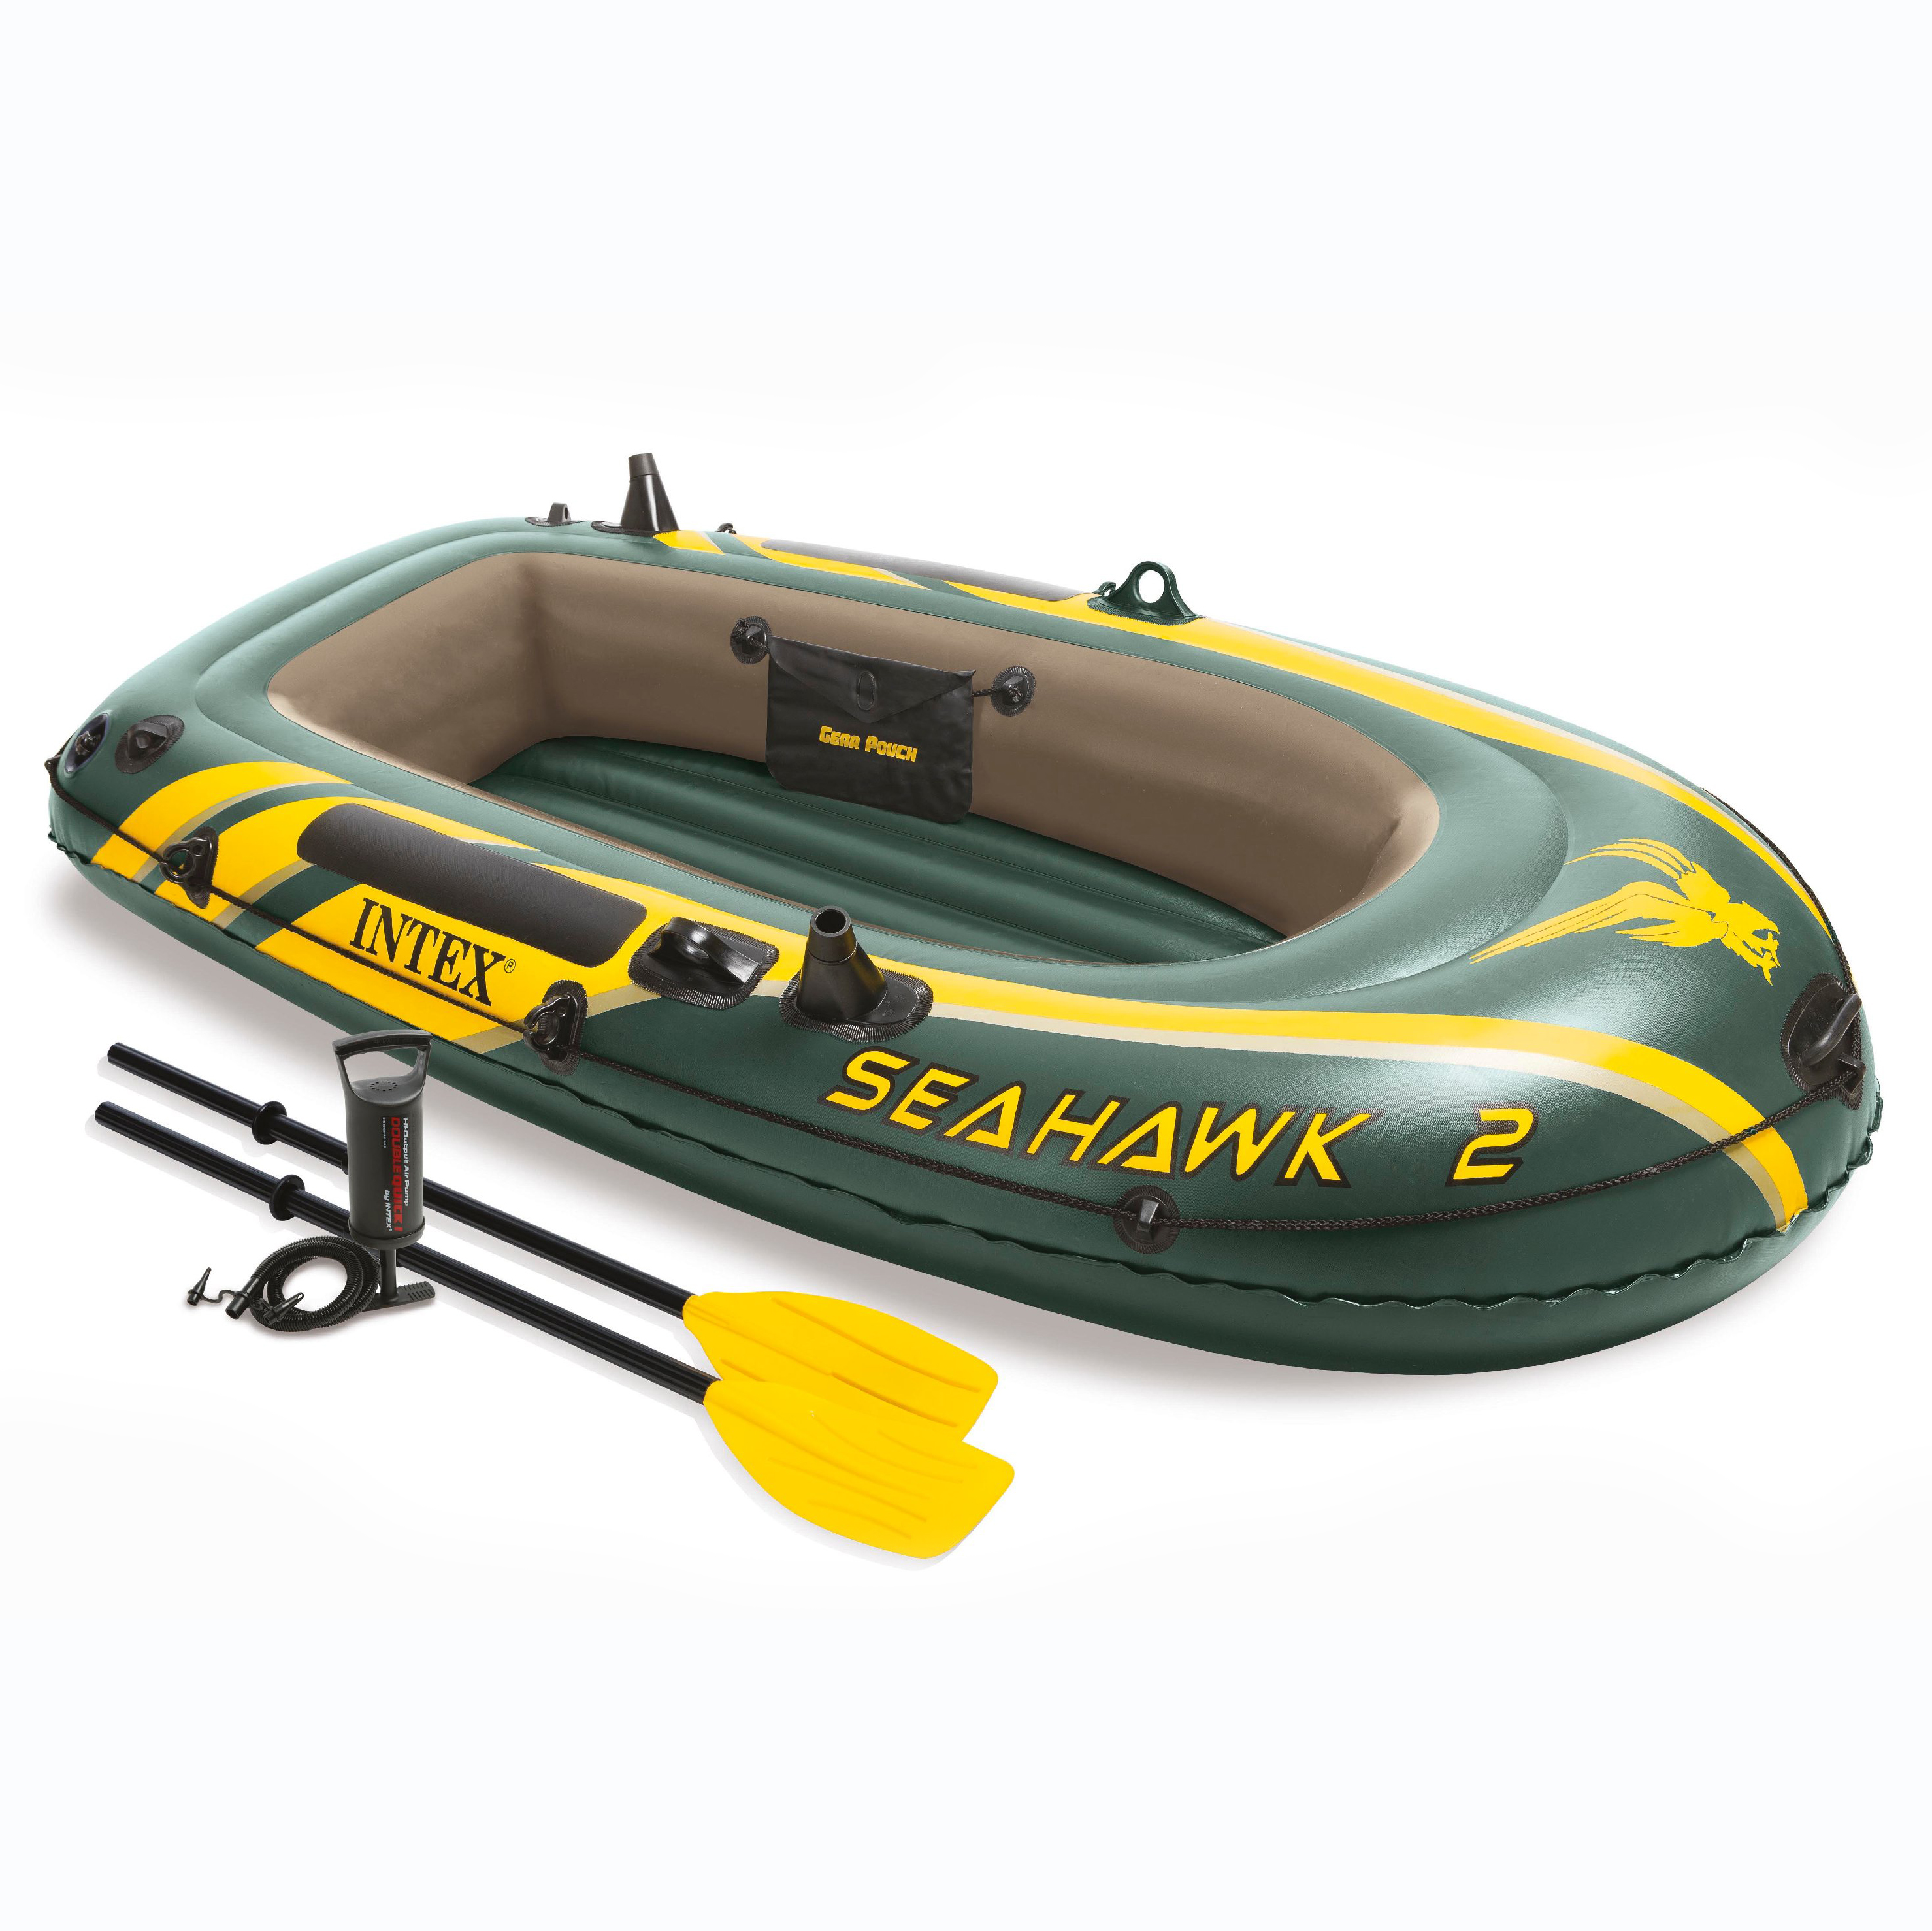 Intex Inflatable Seahawk 2 Two-Person Boat with Oars and Pump